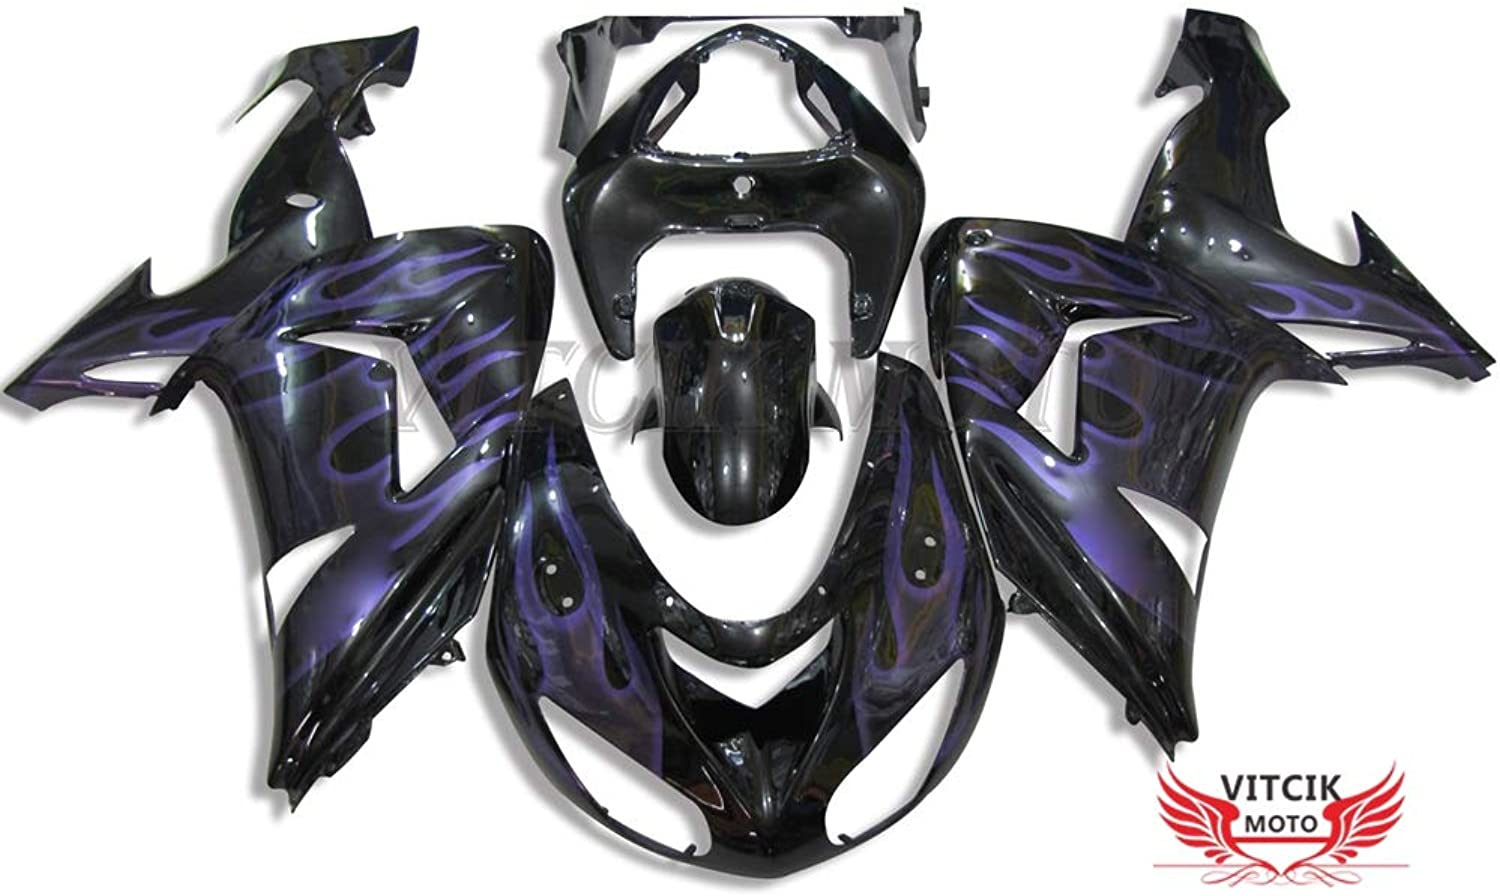 VITCIK (Fairing Kits Fit for Kawasaki ZX10R ZX10R Ninja 2006 2007 ZX10R ZX10R Ninja 06 07) Plastic ABS Injection Mold Complete Motorcycle Body Aftermarket Bodywork Frame (Black & Purple) A020